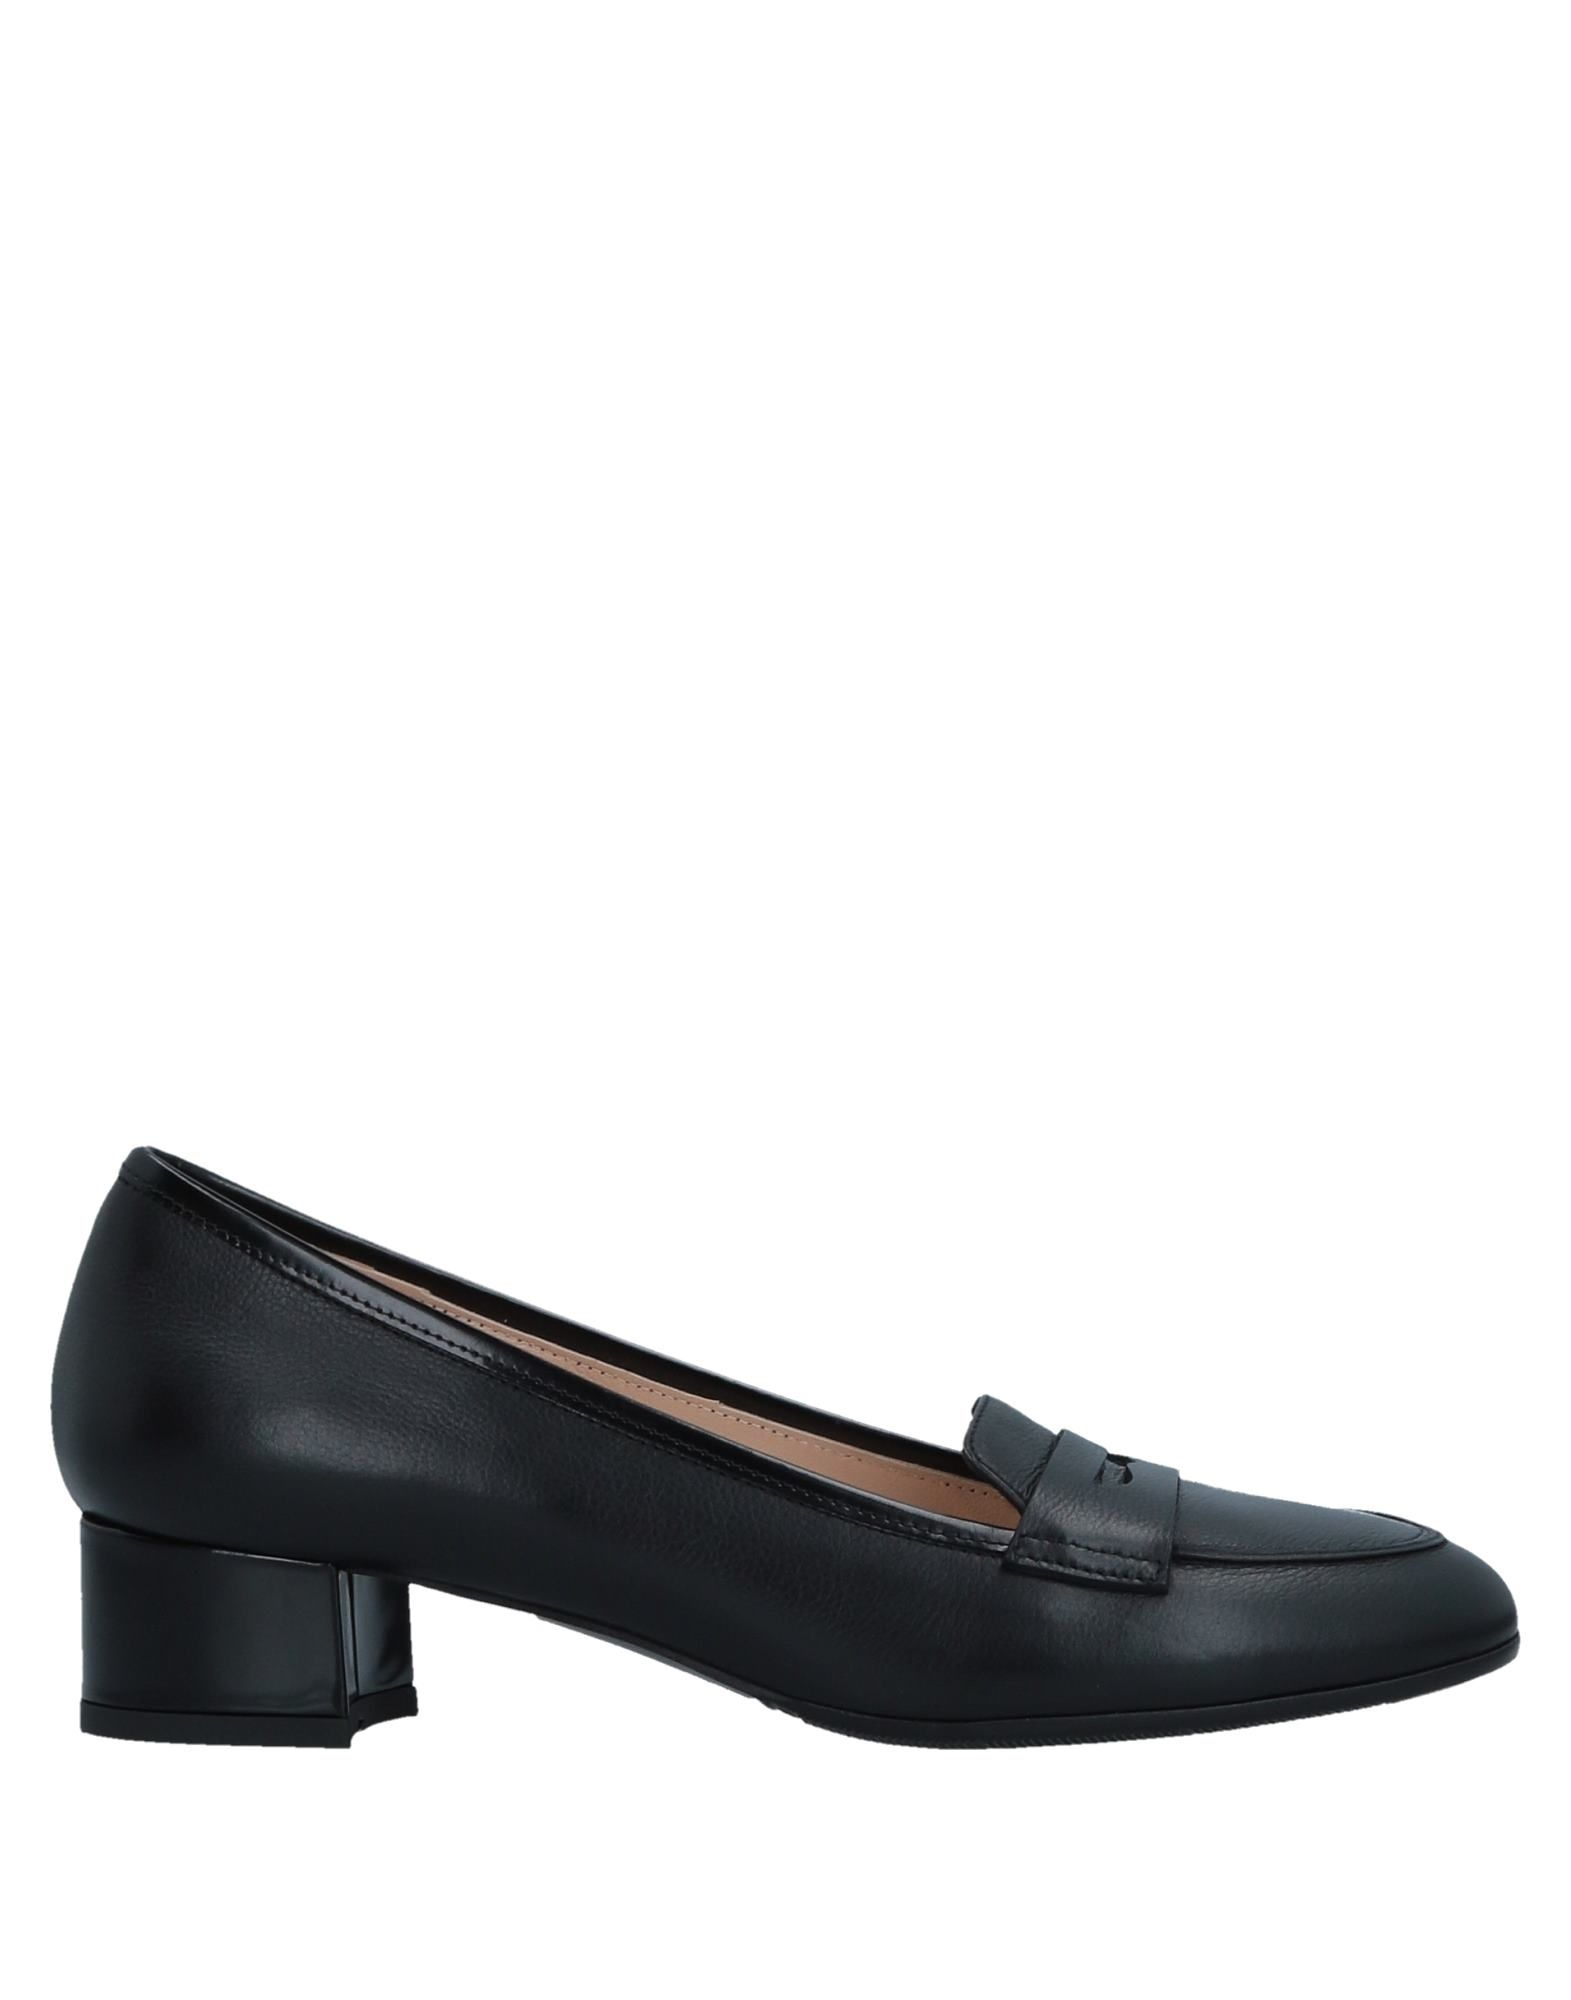 F.Lli Bruglia Loafers - Women F.Lli  Bruglia Loafers online on  F.Lli United Kingdom - 11517901IJ ad0745